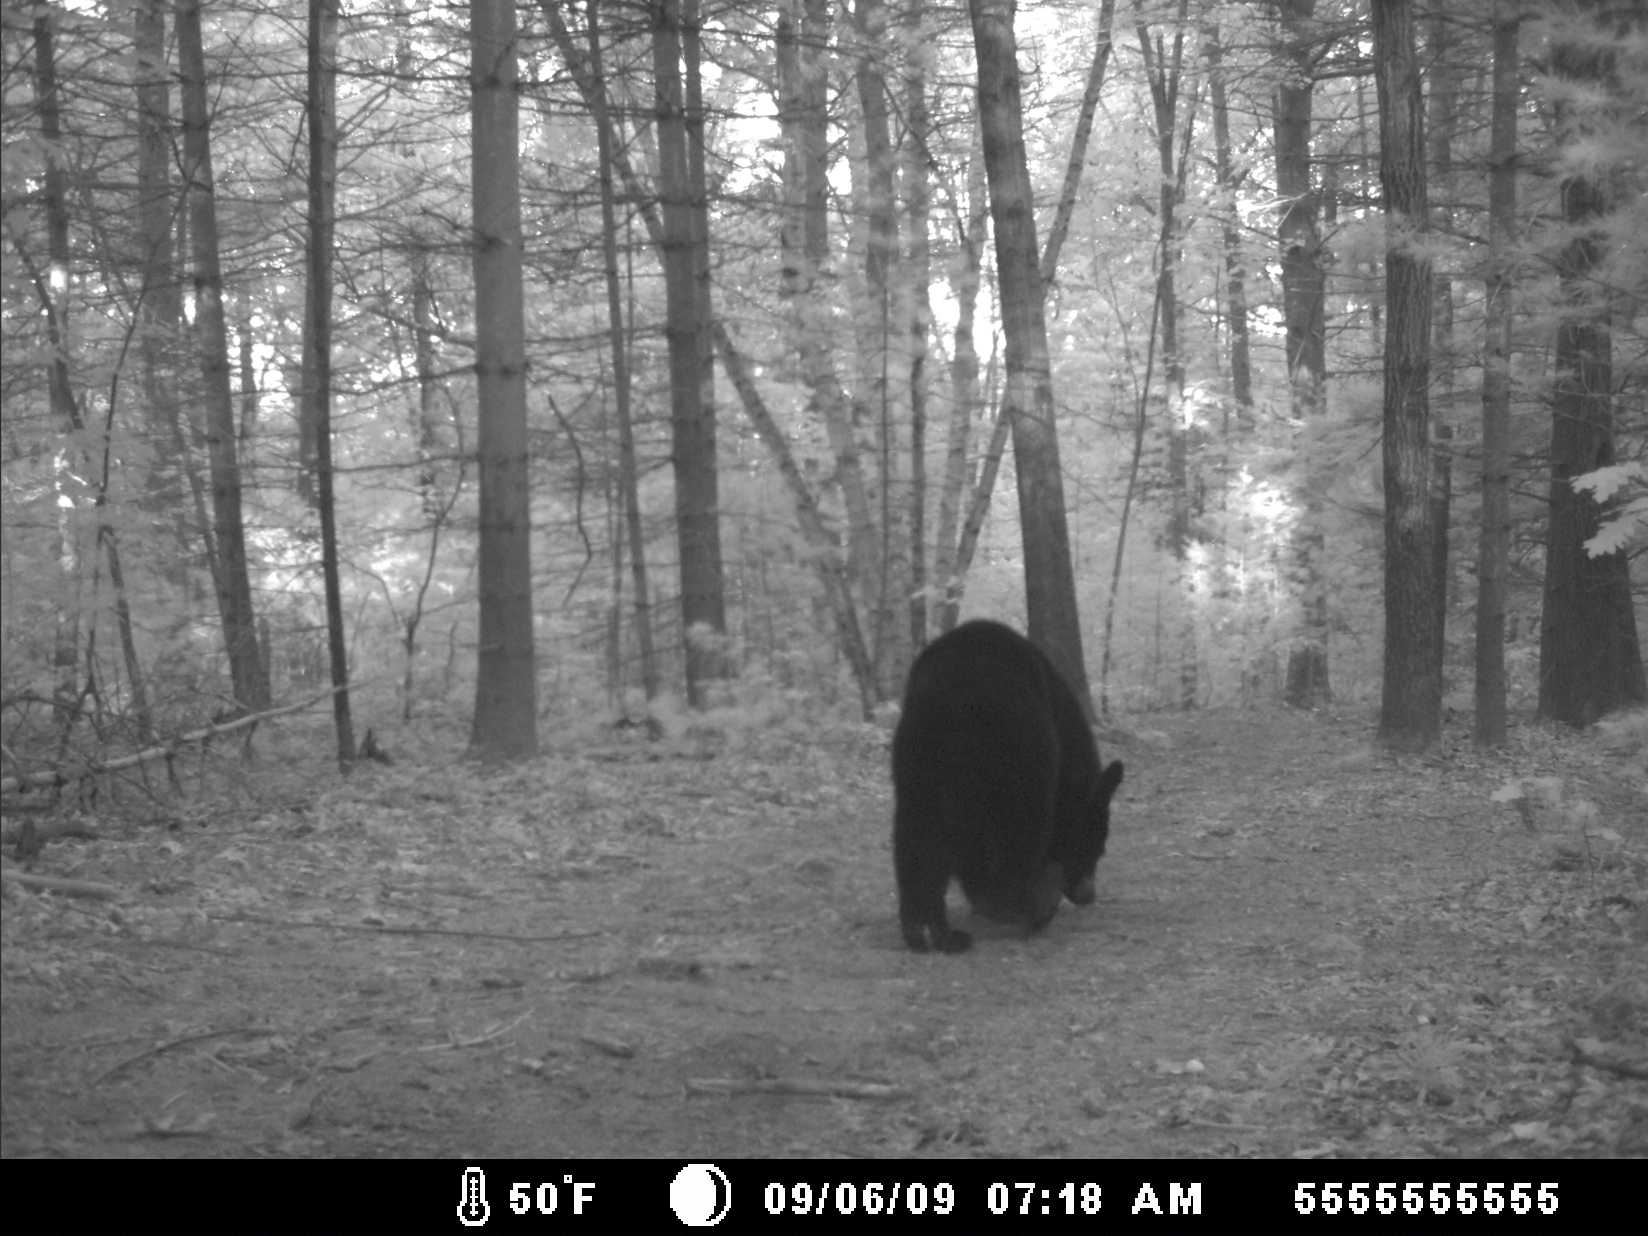 Photo of bear taken September 9, 2009, off Old Stage Road.